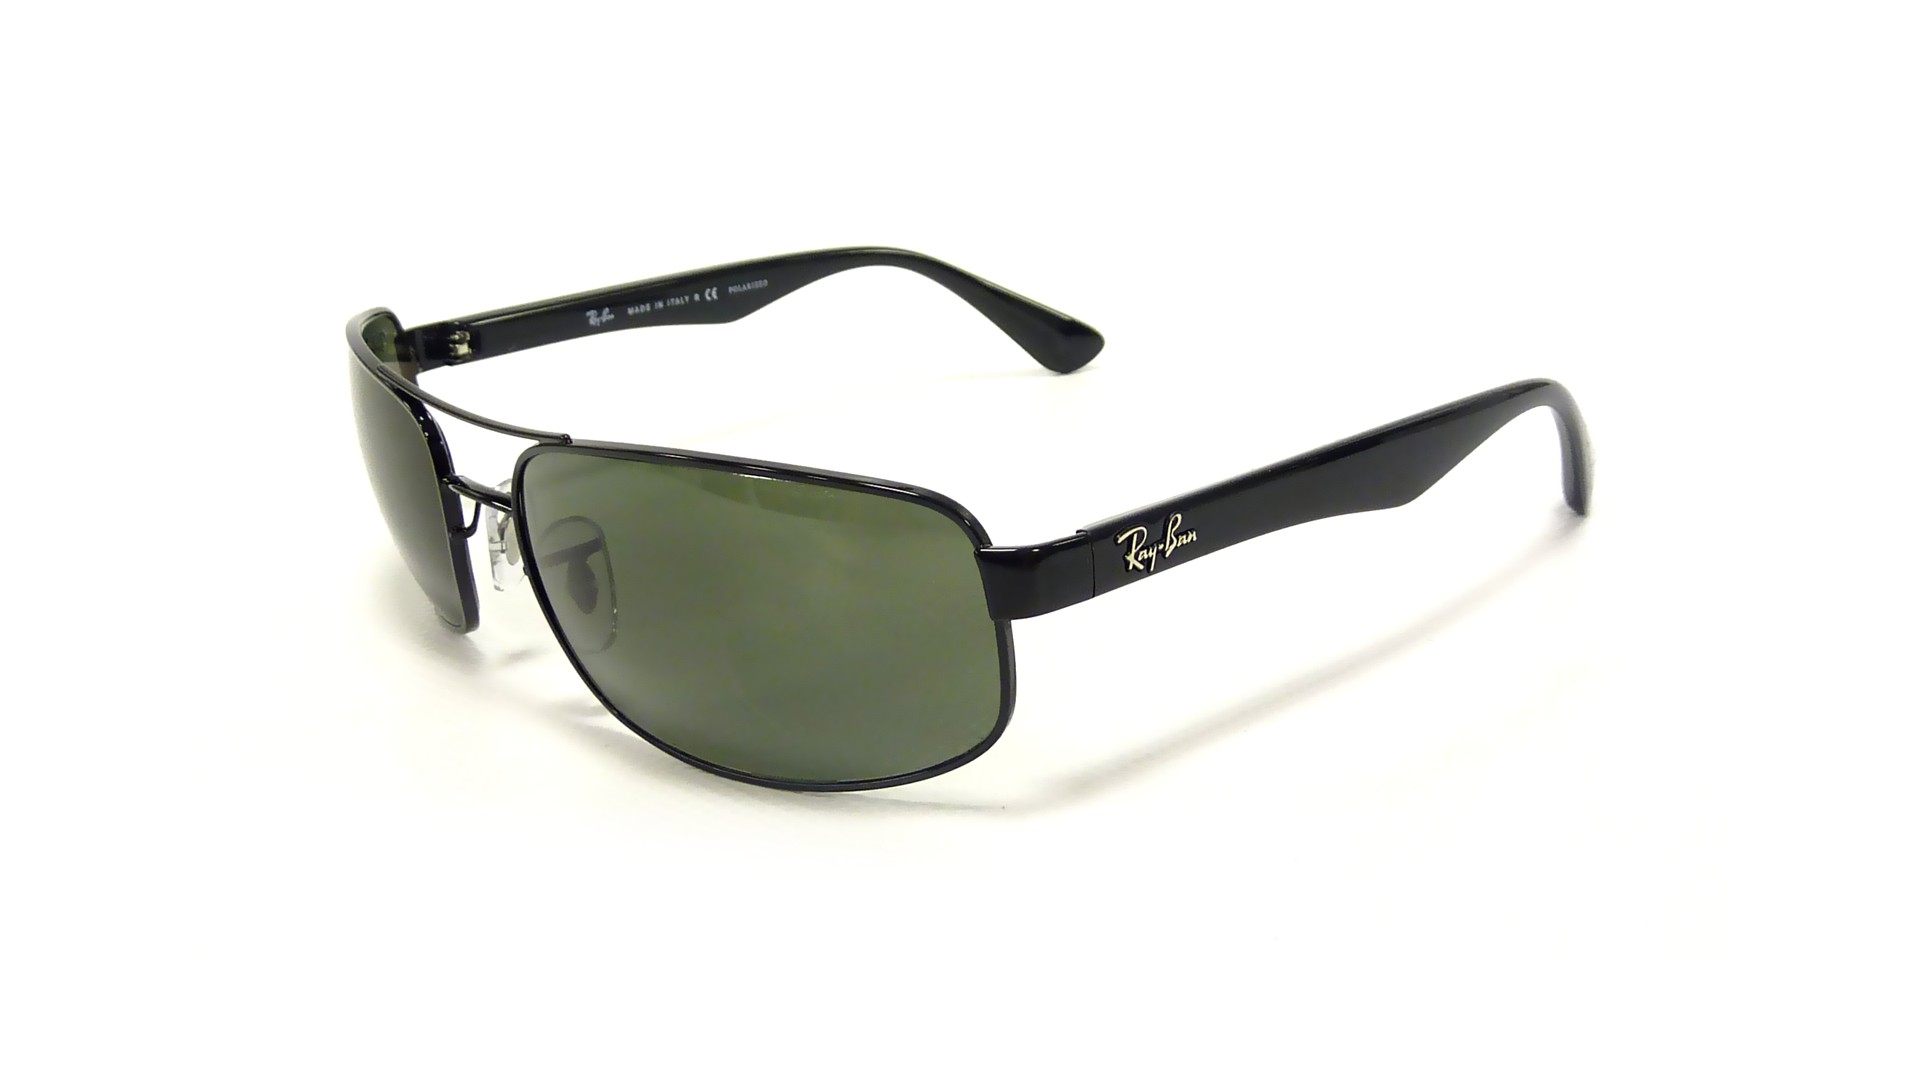 3d5c044f42 Sunglasses Ray-Ban RB3445 002 58 61-17 Black Large Polarized